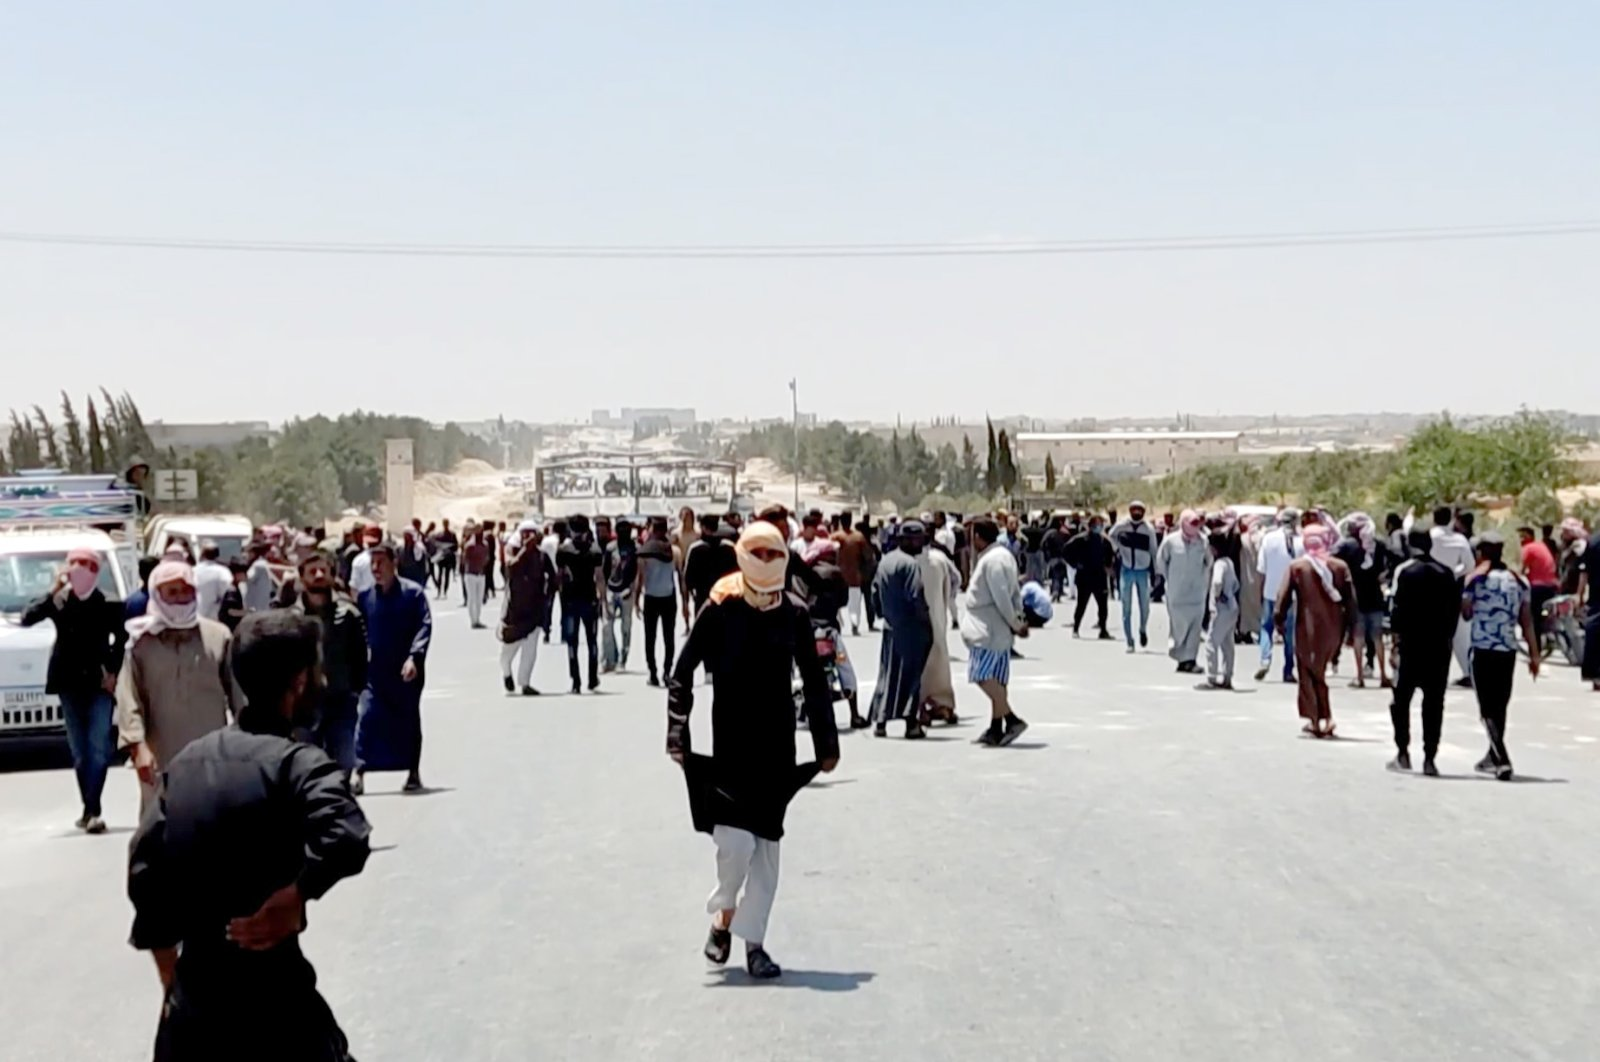 Protesters demonstrate against the PKK/YPG in Manbij, Syria, June 1, 2021. (AA Photo)